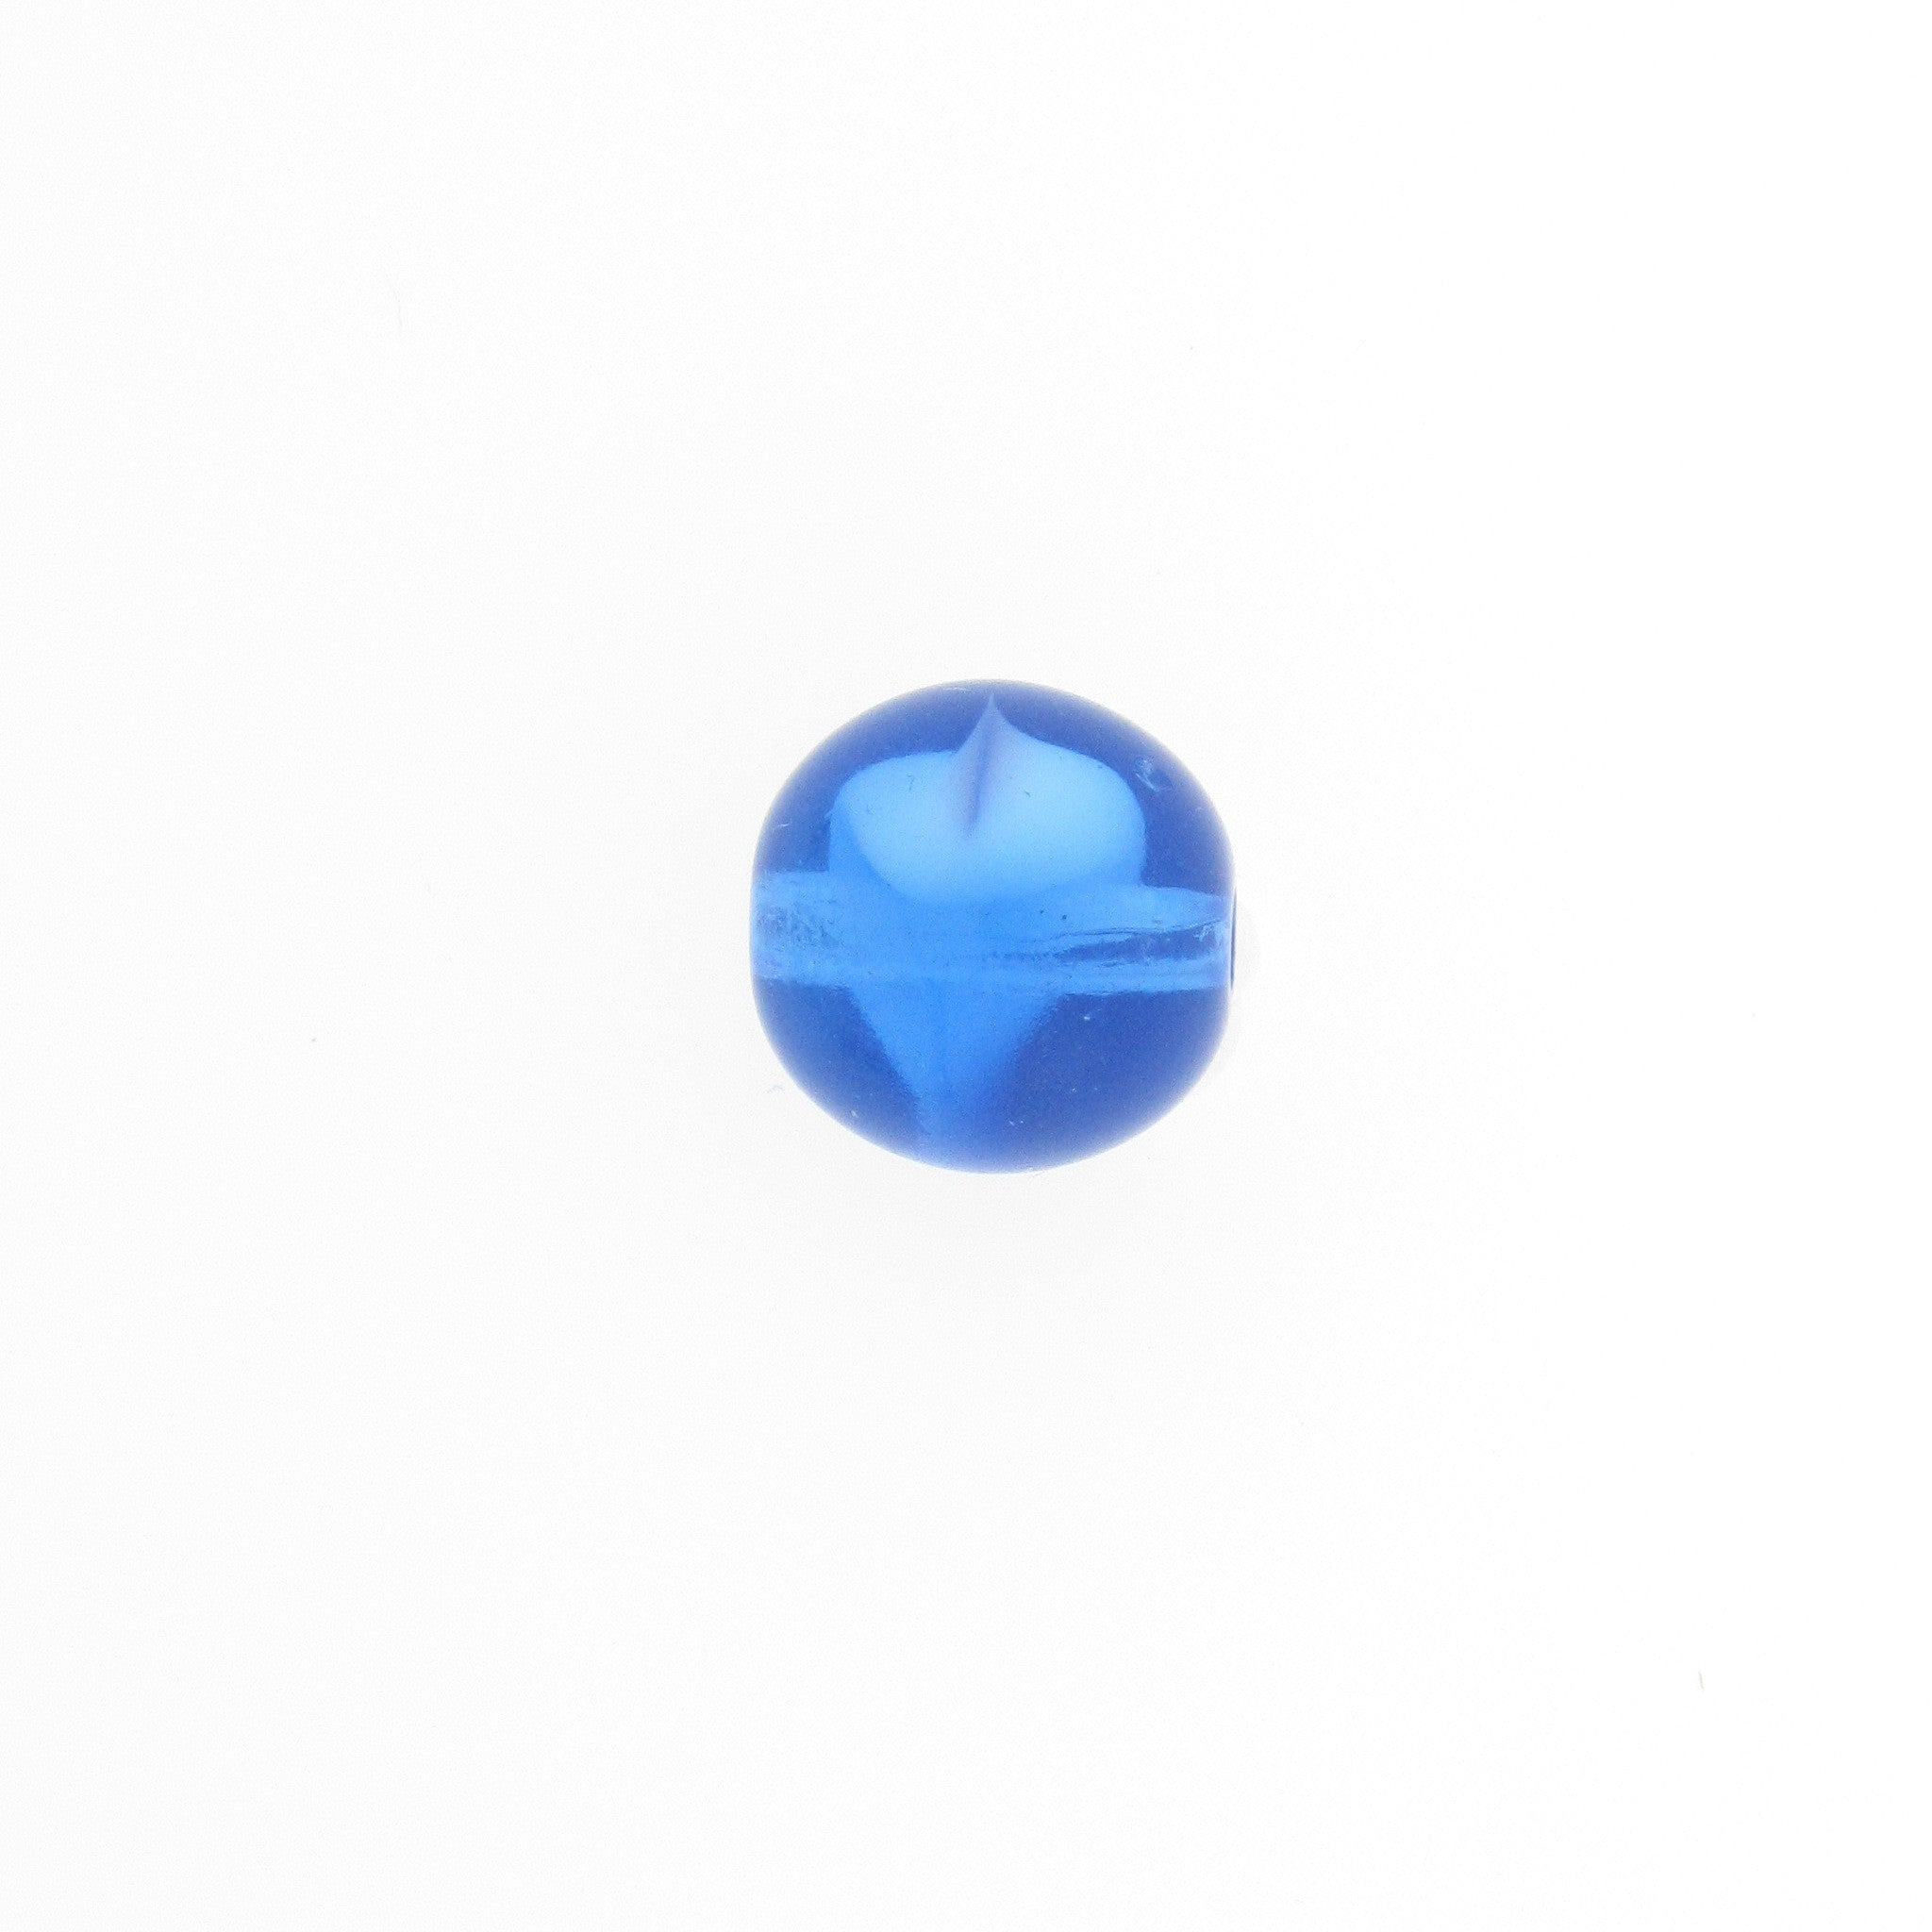 12MM Sapphire Givre Glass Bead (36 pieces)